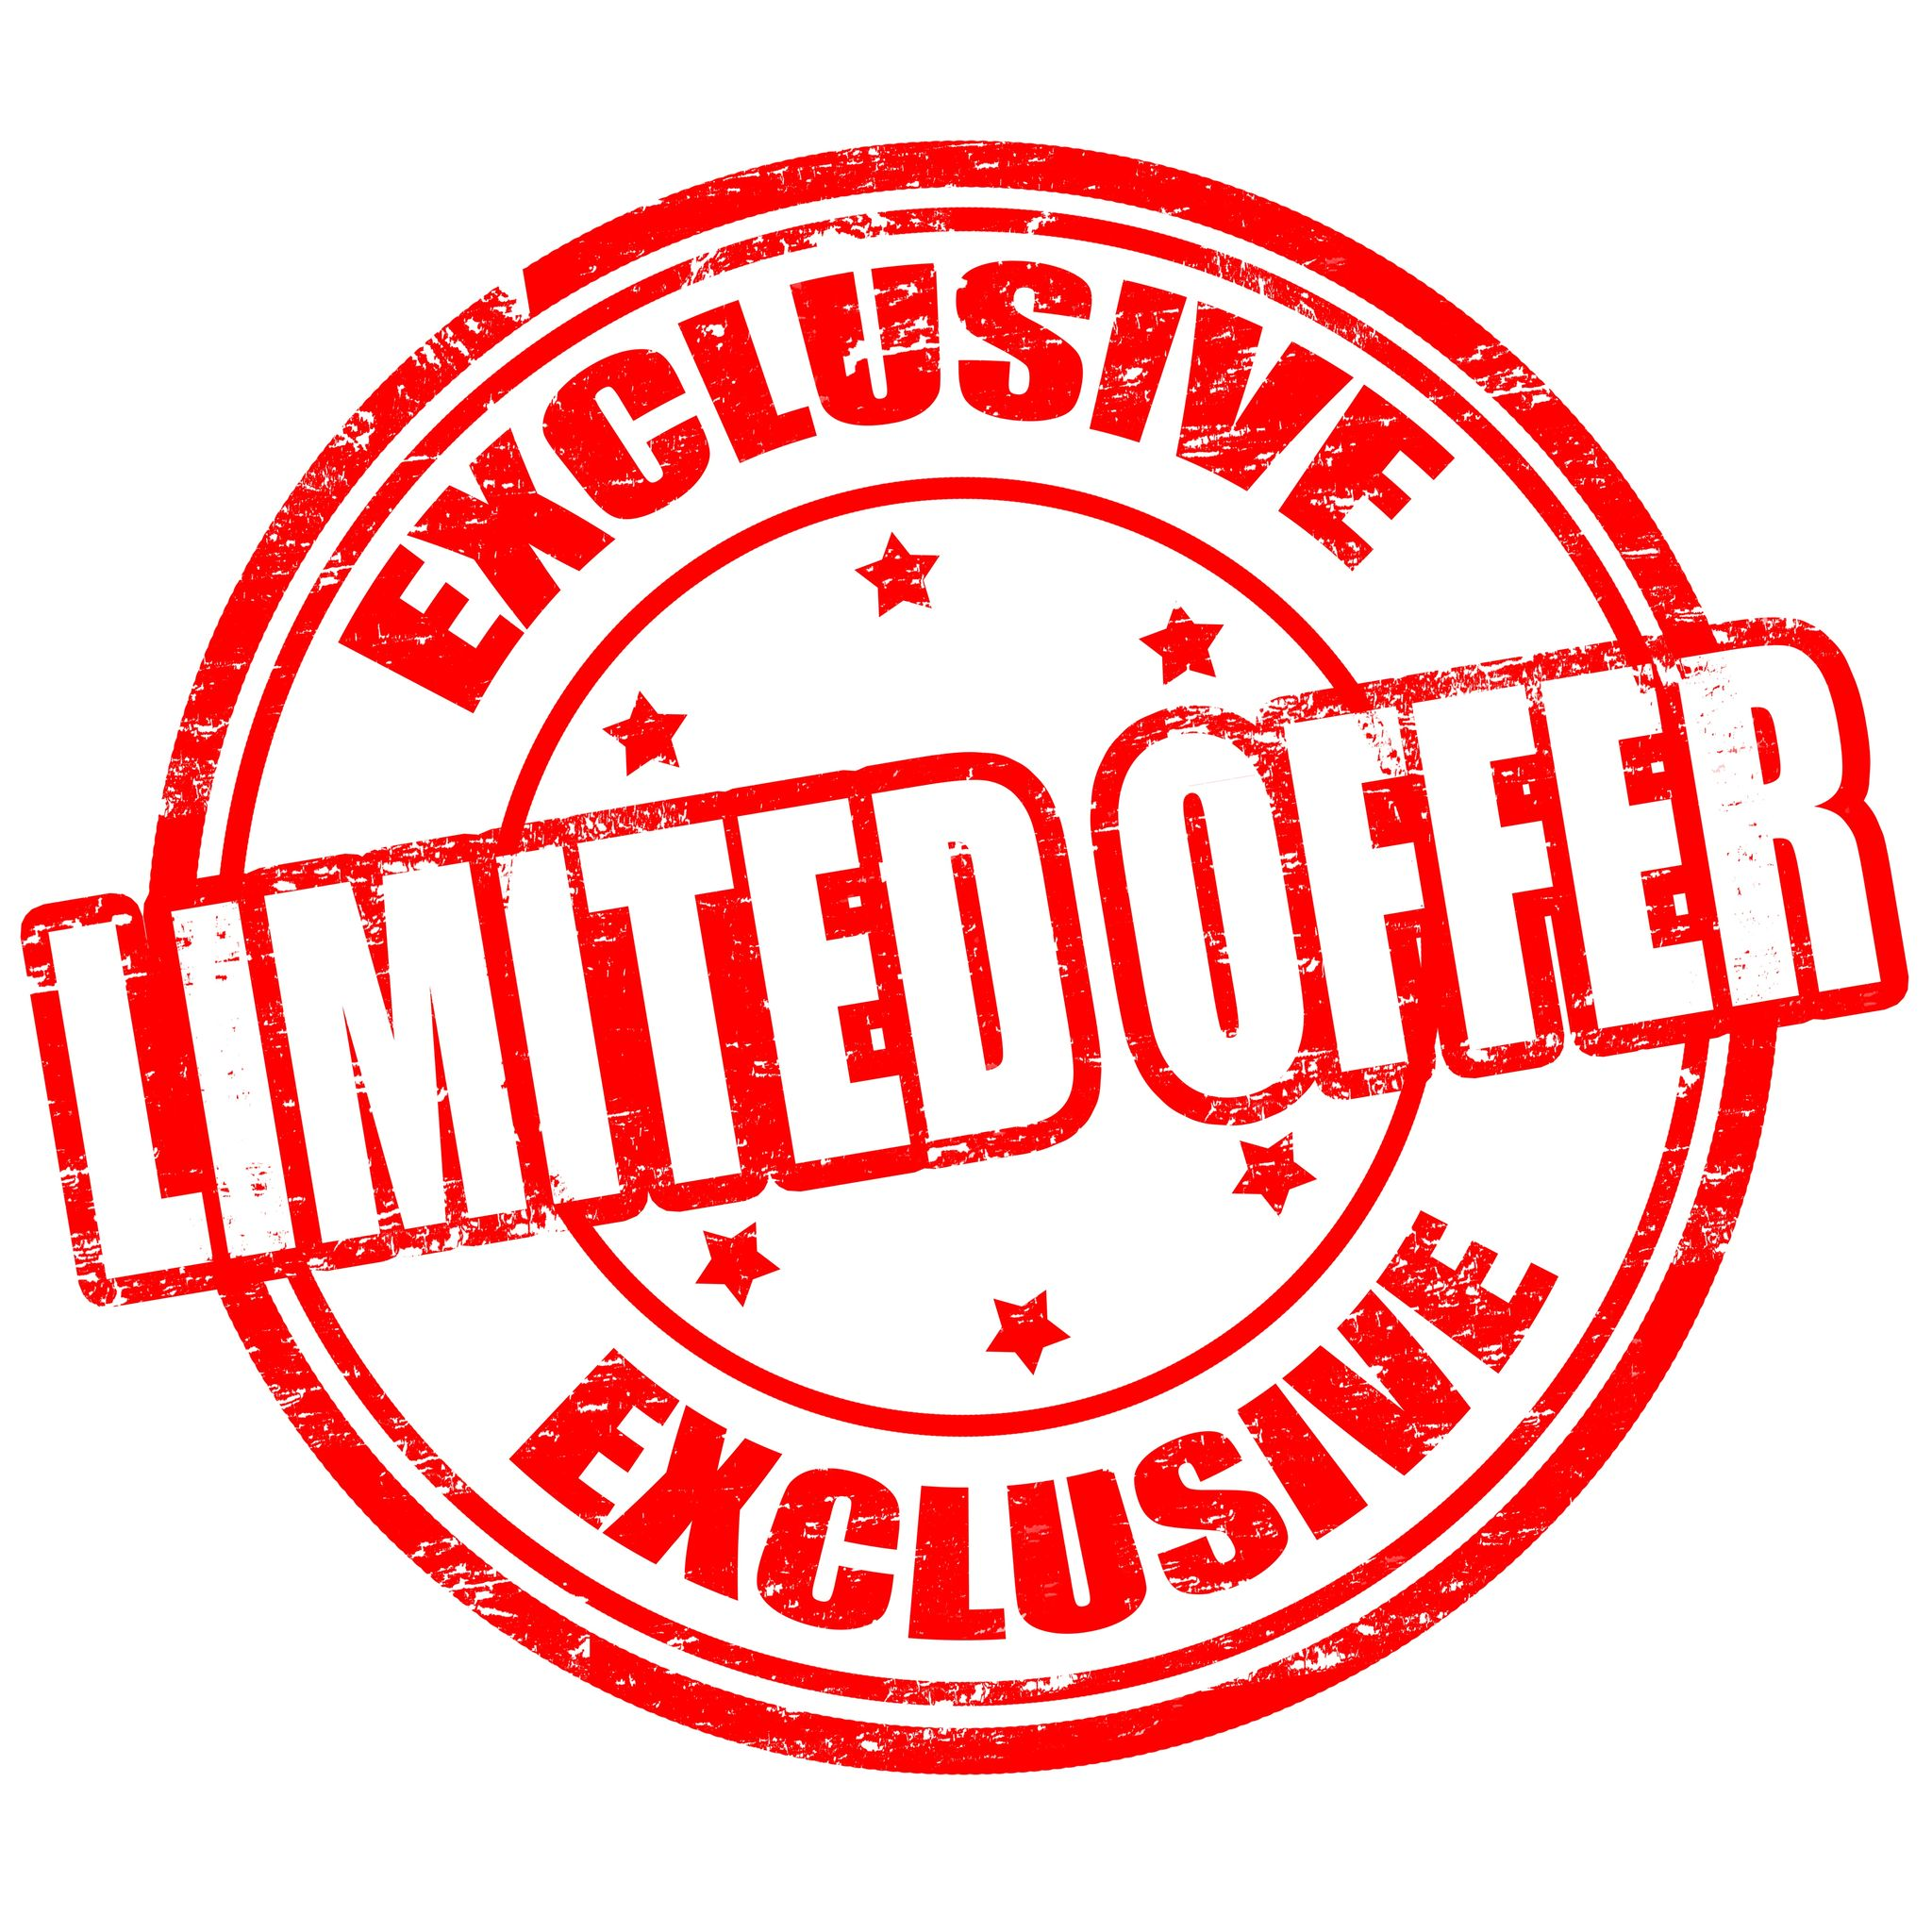 Limited Offer Clipart badge - Limited Offer Clipart